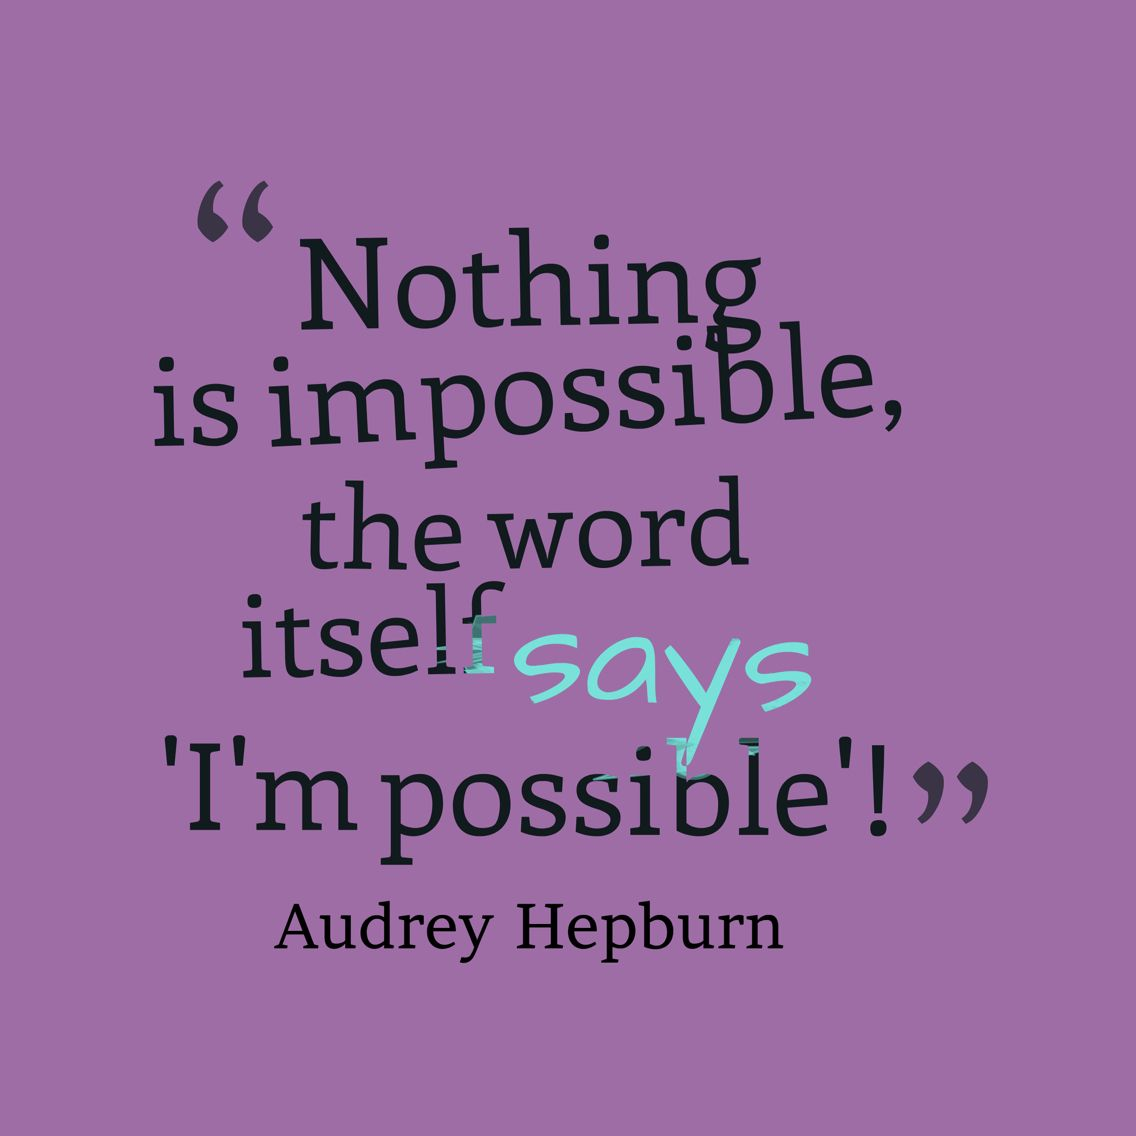 Options Quotes Nothing Is Impossible So Important To Remember There Are Always